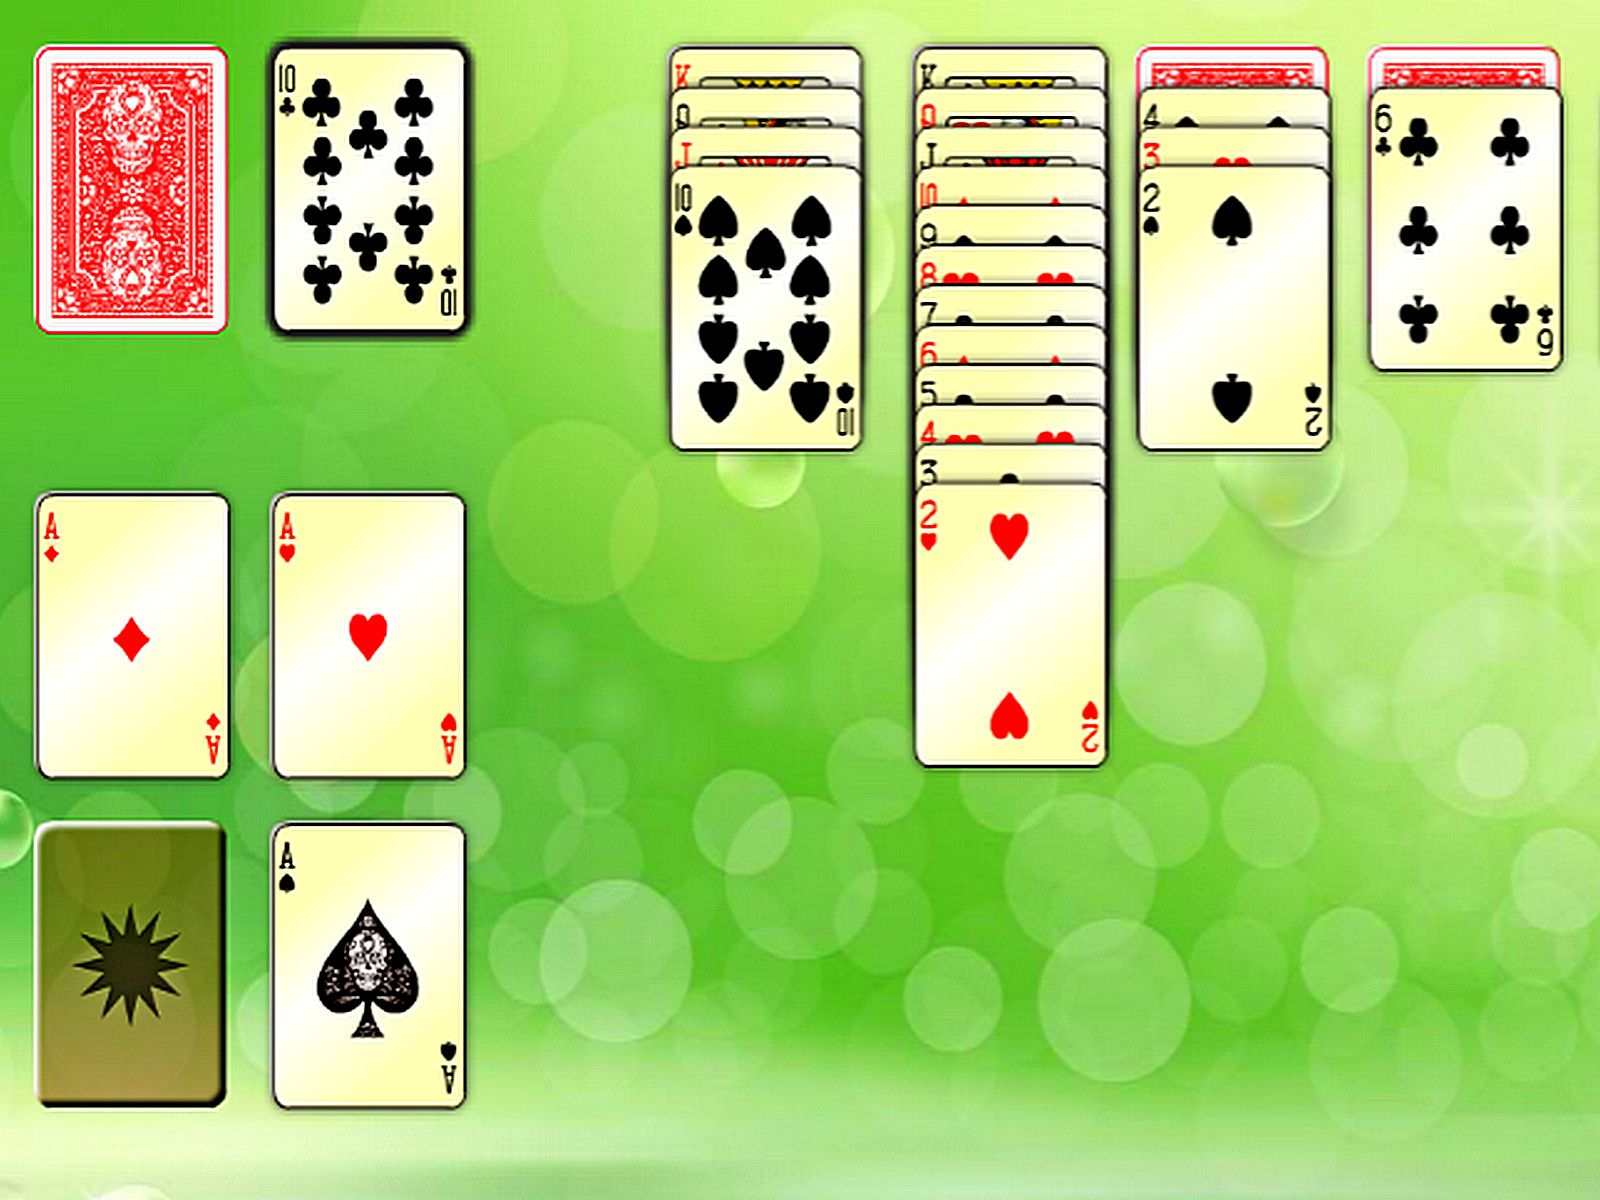 Web Solitaire Game in 2020 Solitaire games, Puzzle